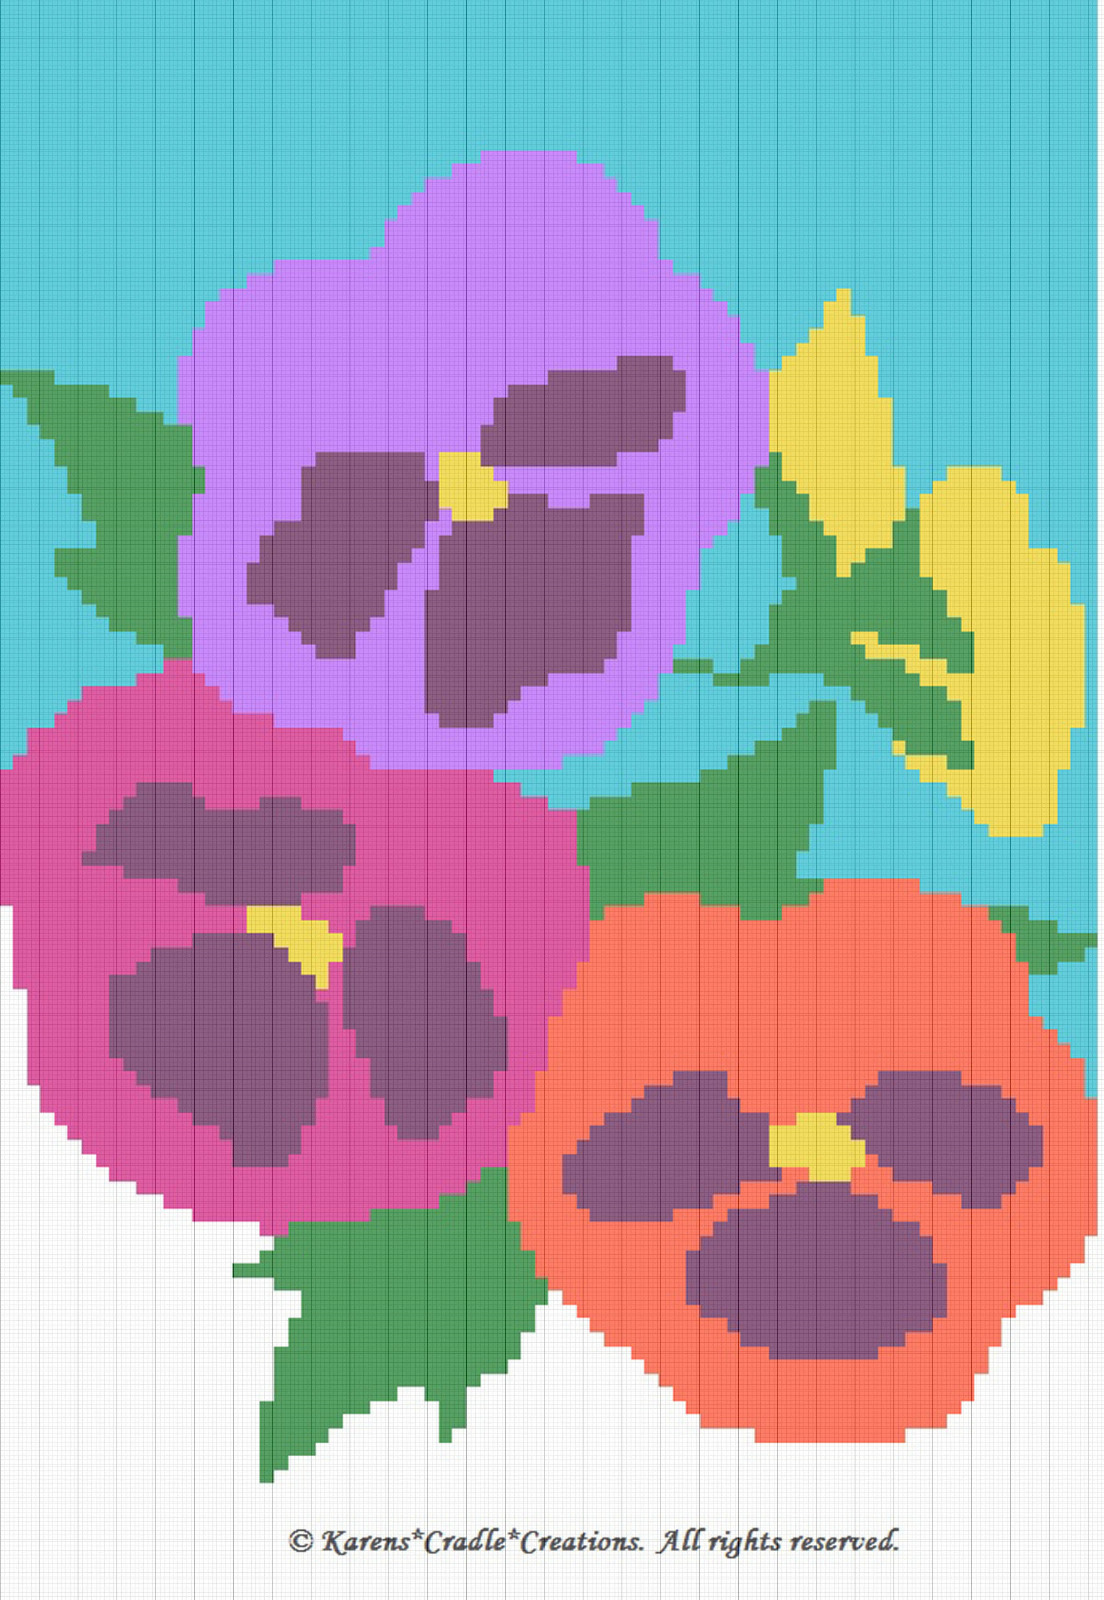 Afghan Crochet Pattern Graphs : Crochet Patterns - PANSIES Color Graph Afghan Pattern USD6 ...